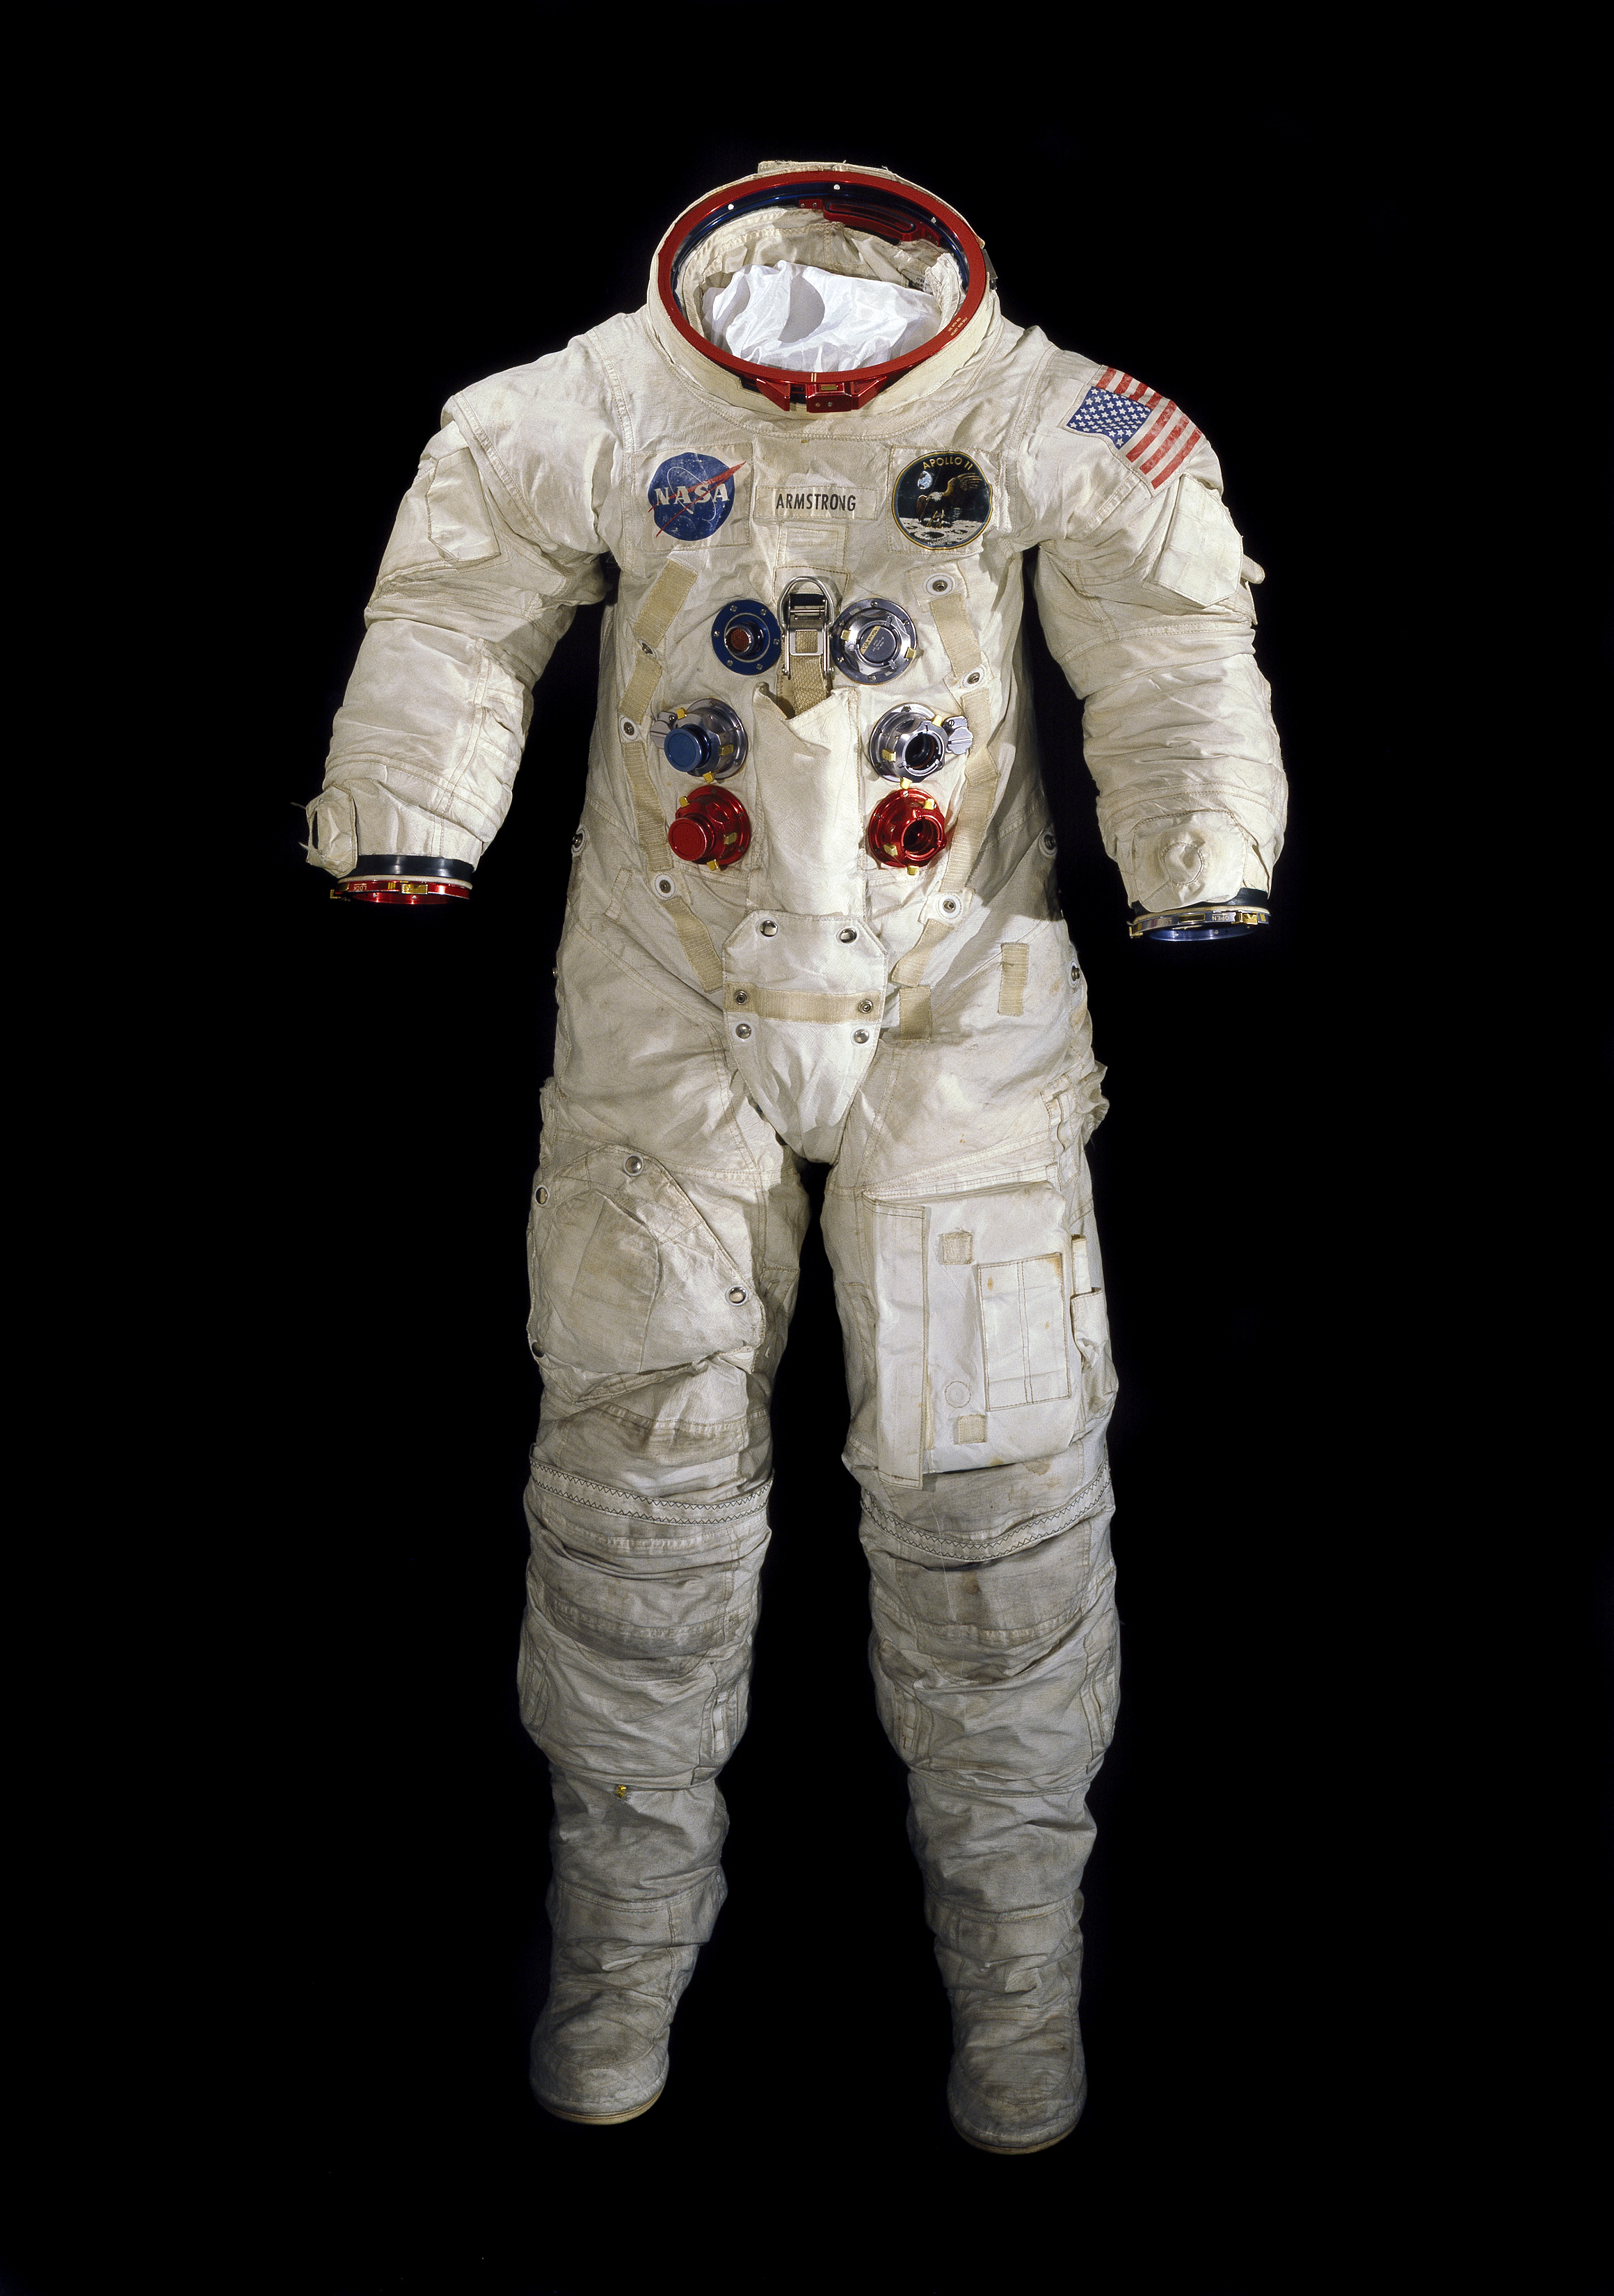 Retro Spacesuit History | Shelby White - The blog of ...